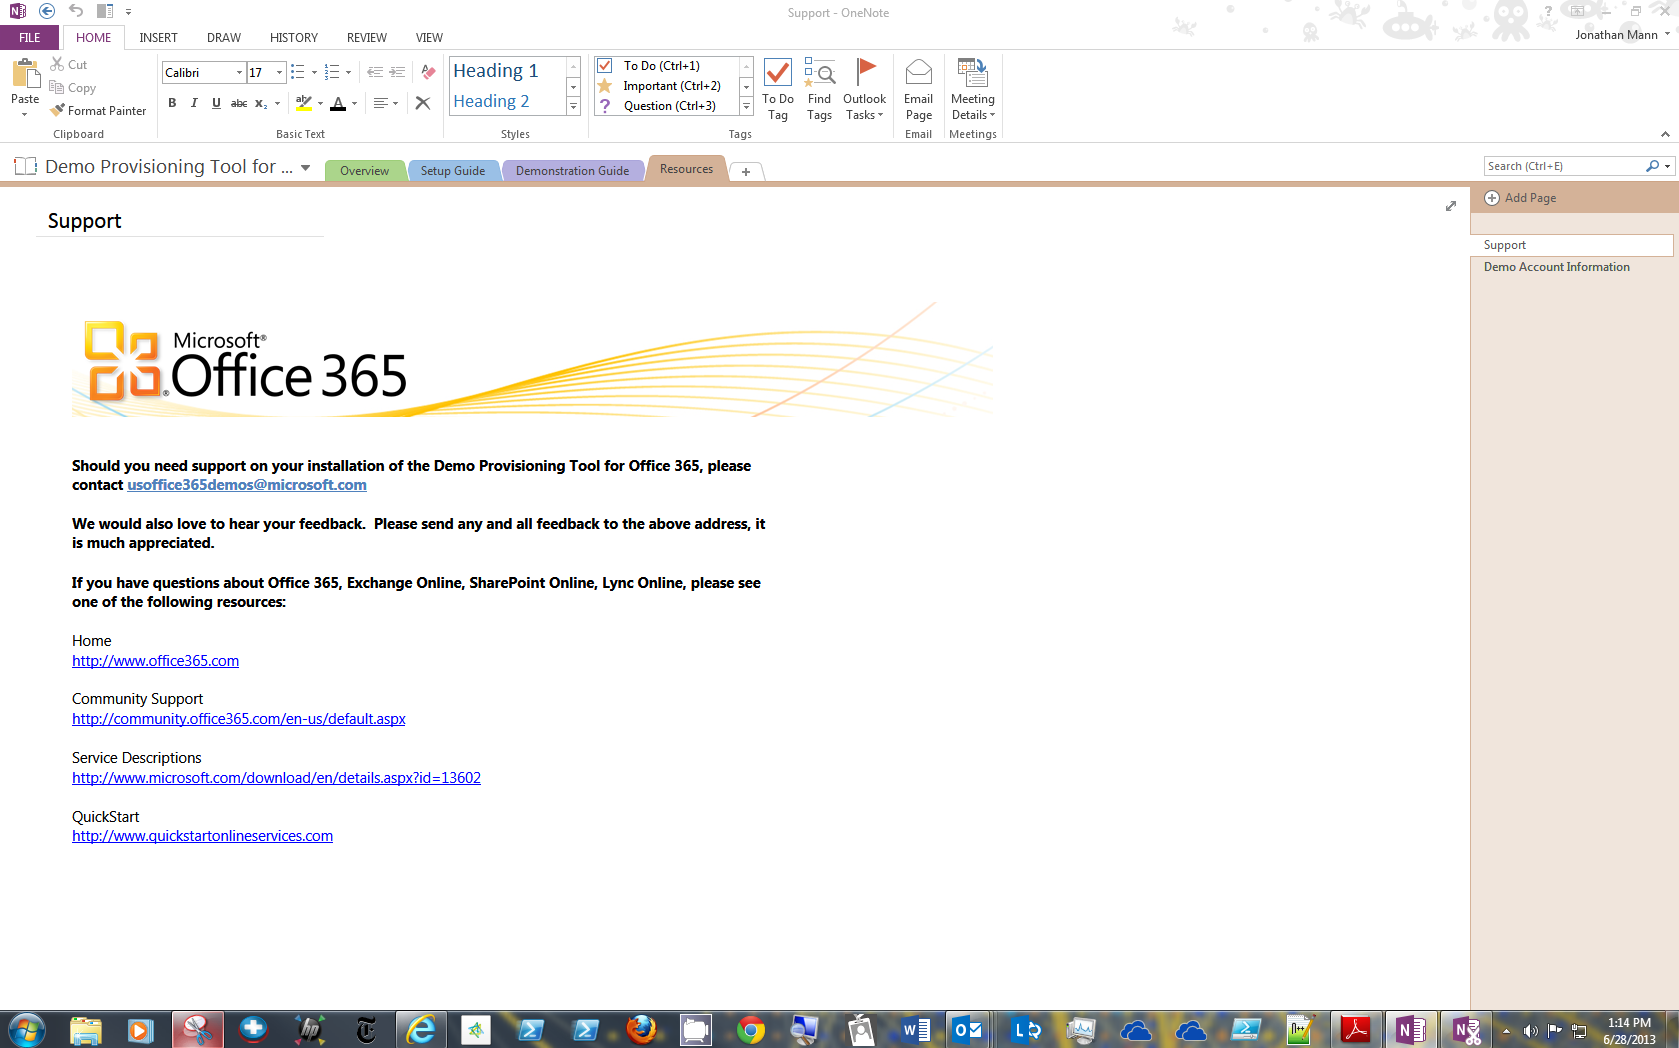 onenote-screen-shot.PNG